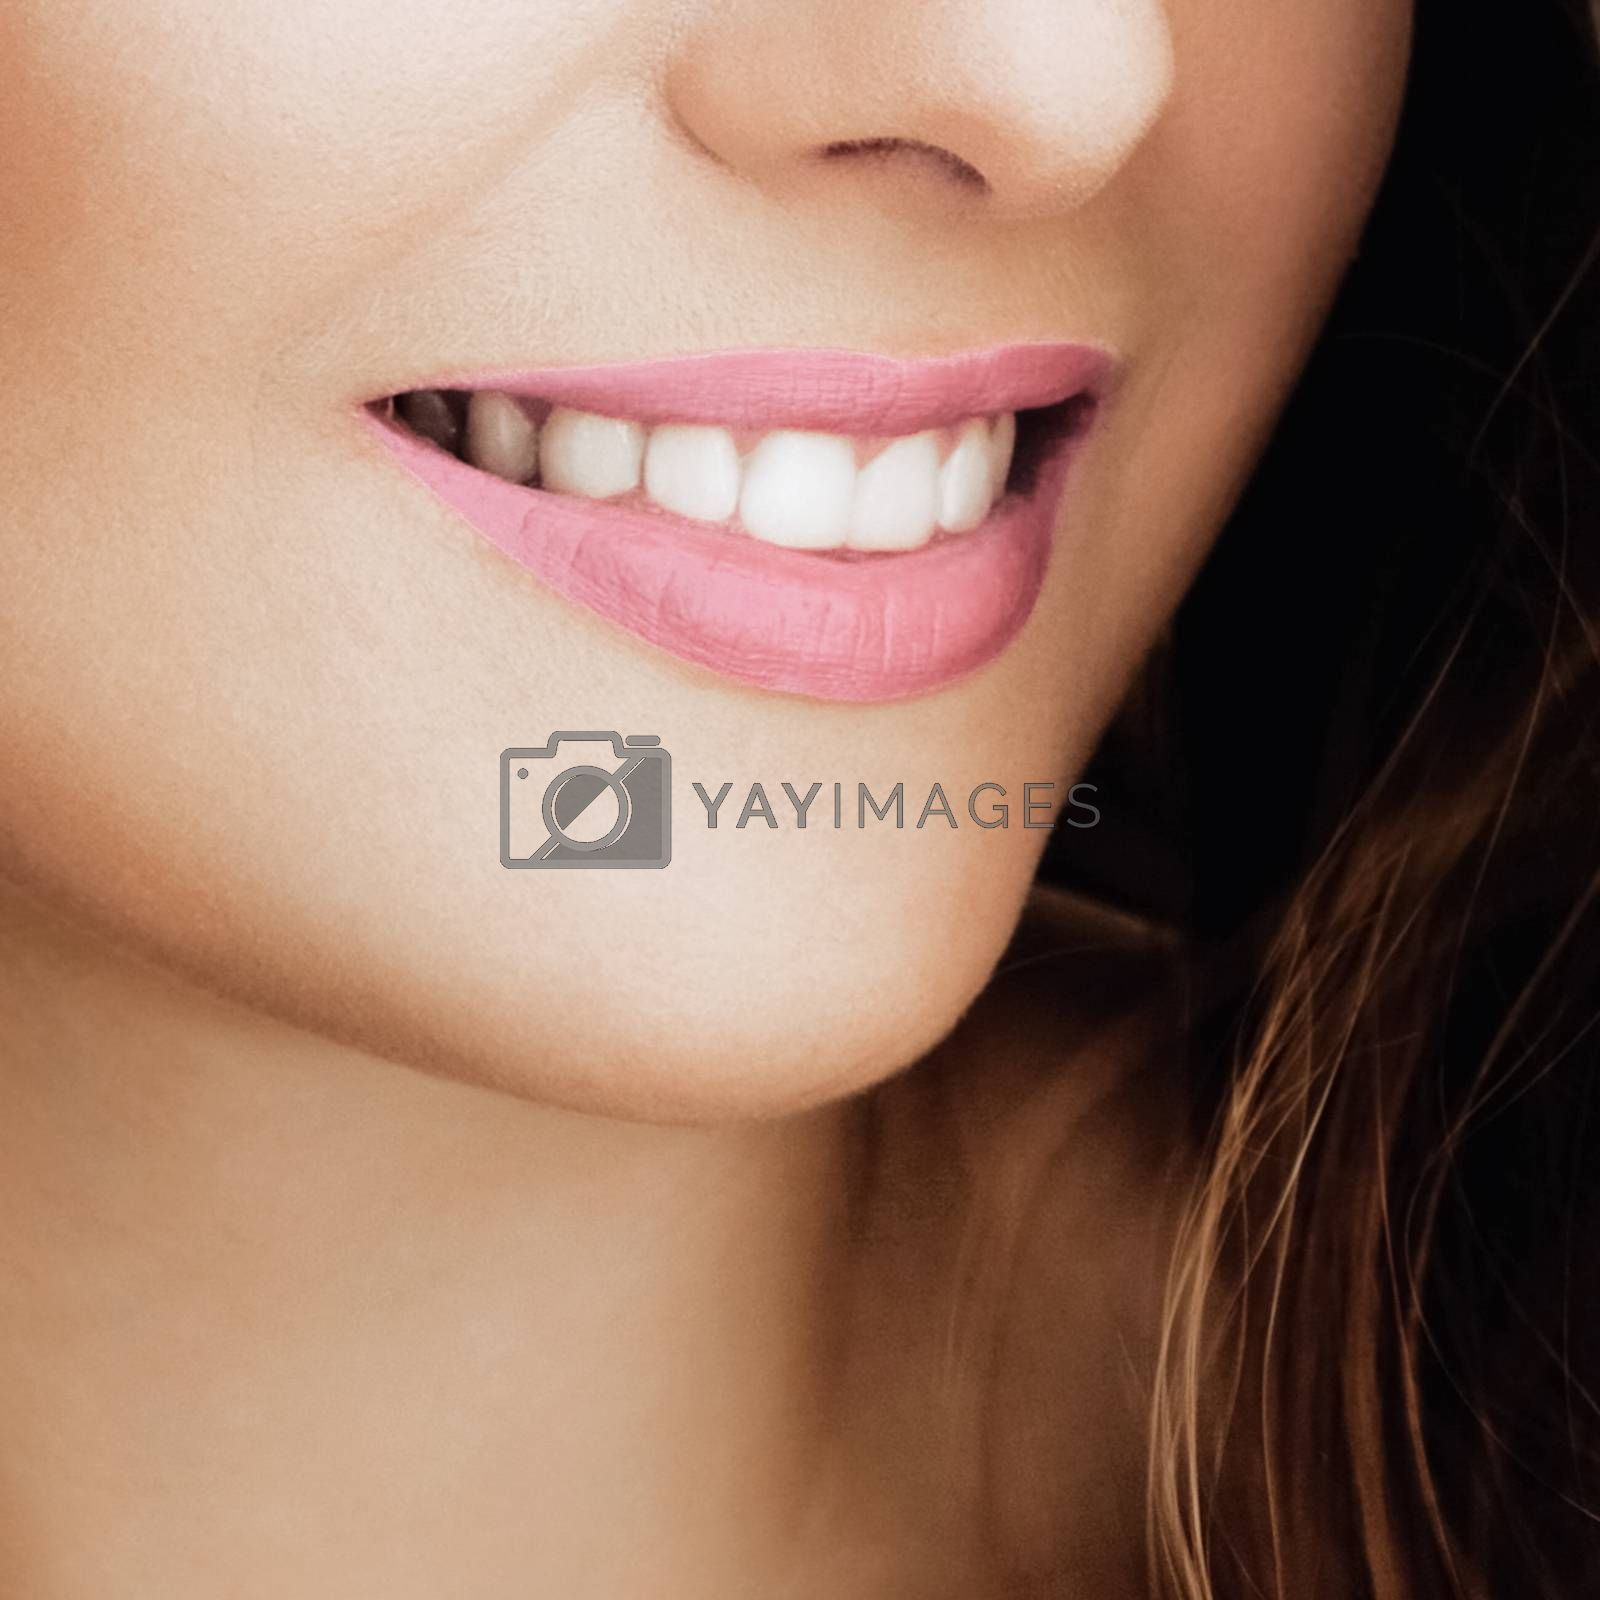 Beautiful healthy female smile with perfect natural white teeth, beauty face closeup of smiling young woman, bright lipstick makeup and clean skin for dental and healthcare brands